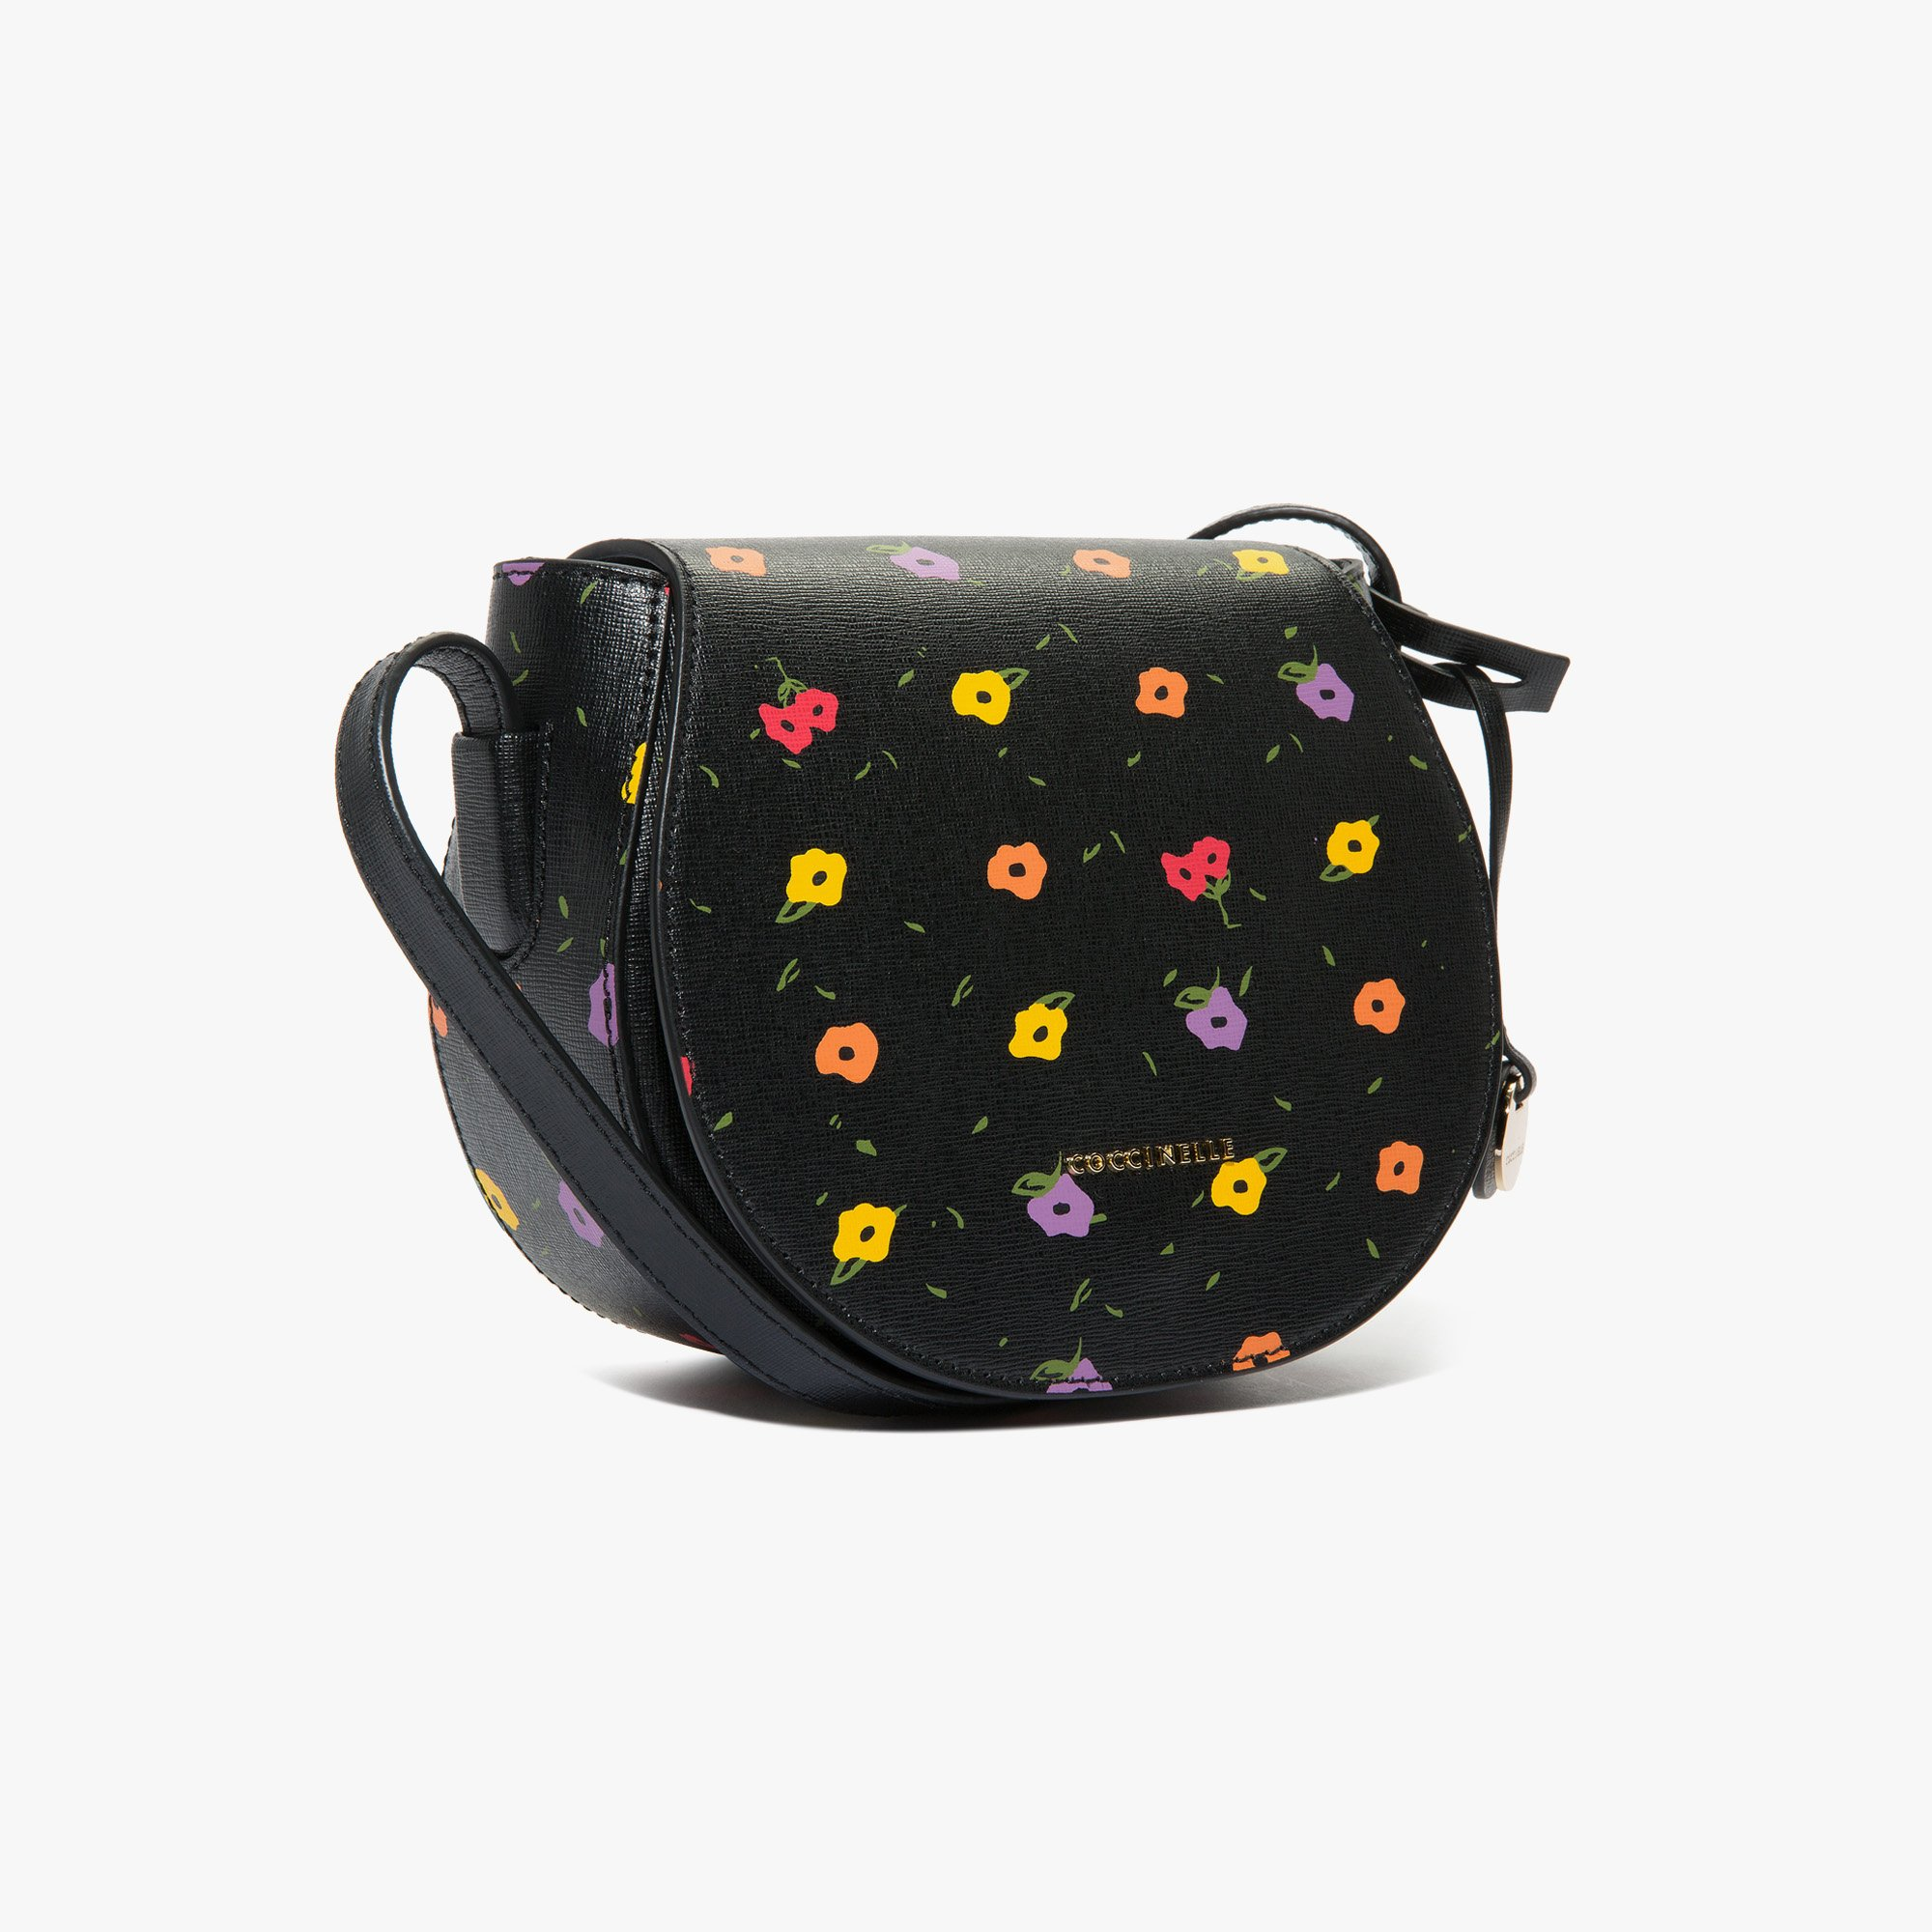 Coccinelle Clementine printed saffiano leather bandolier bag